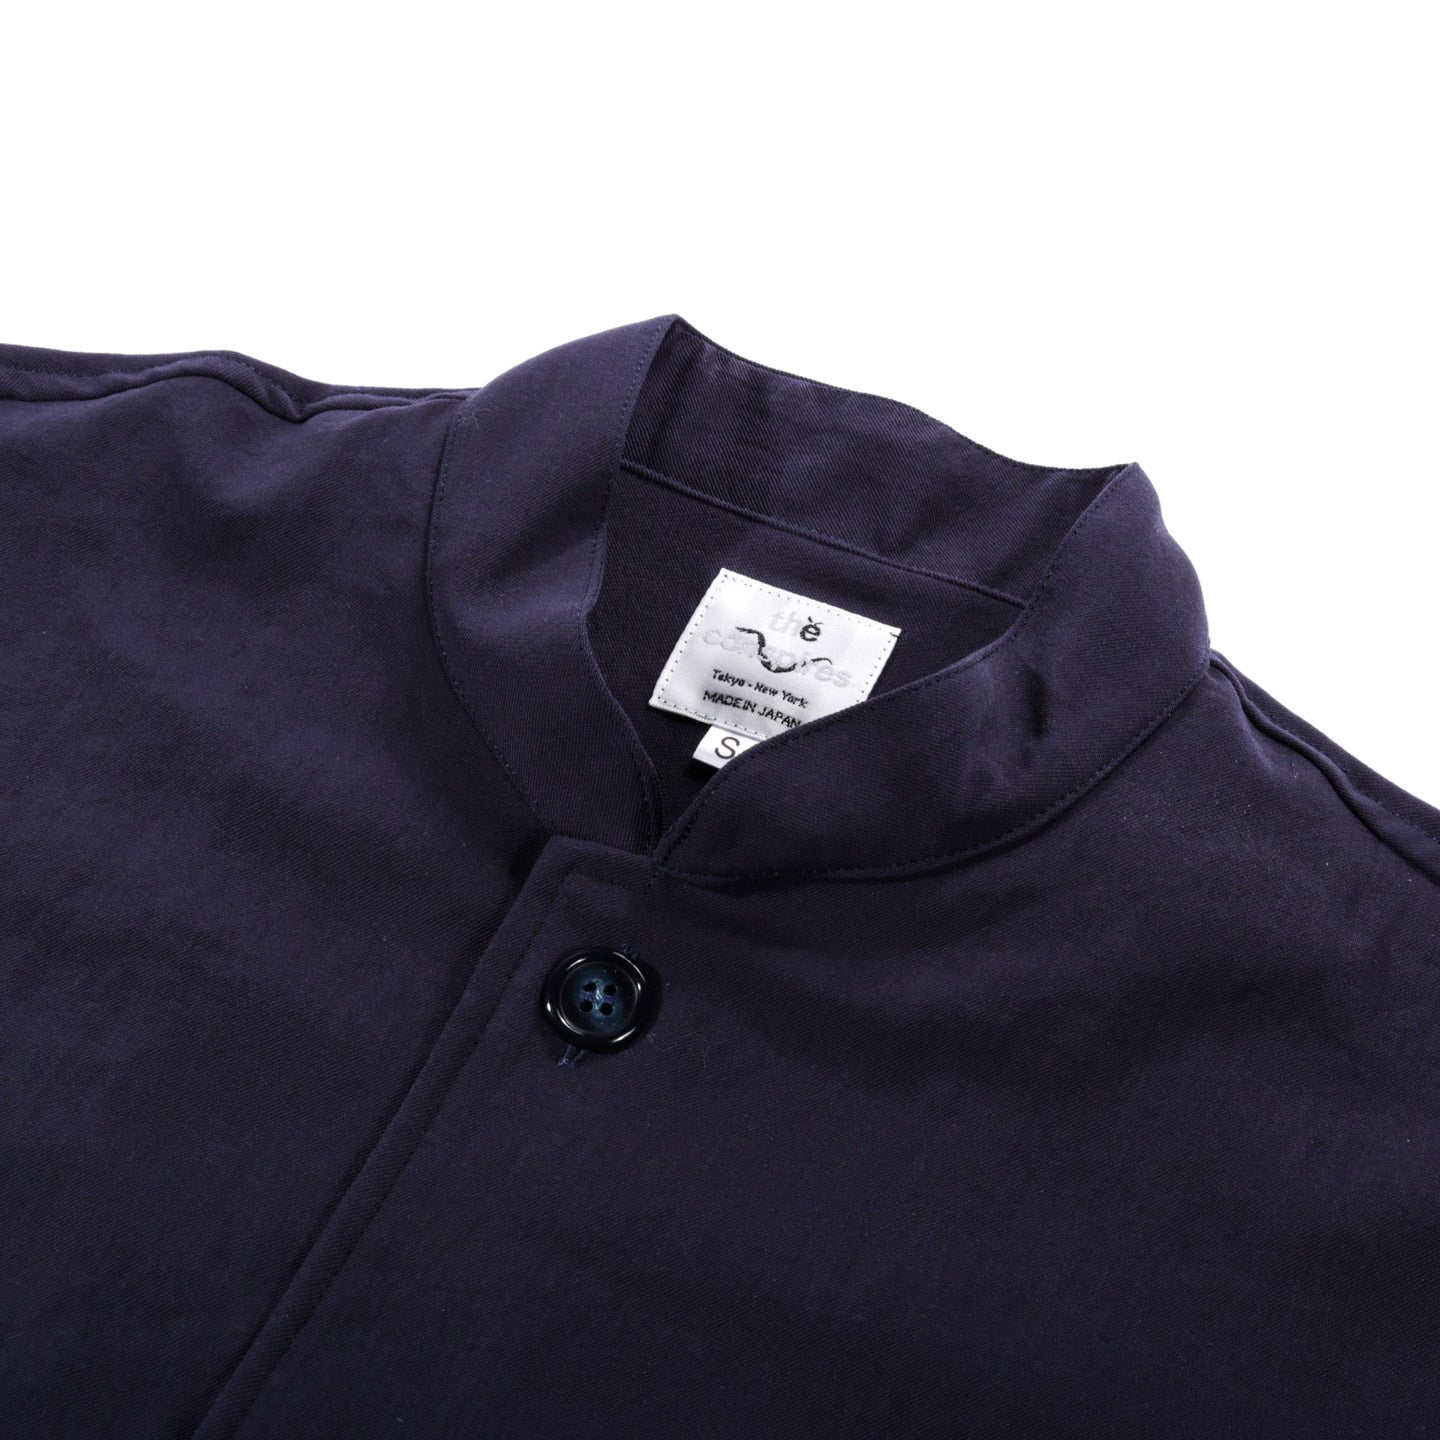 THE CONSPIRES STAND COLLAR JACKET NAVY